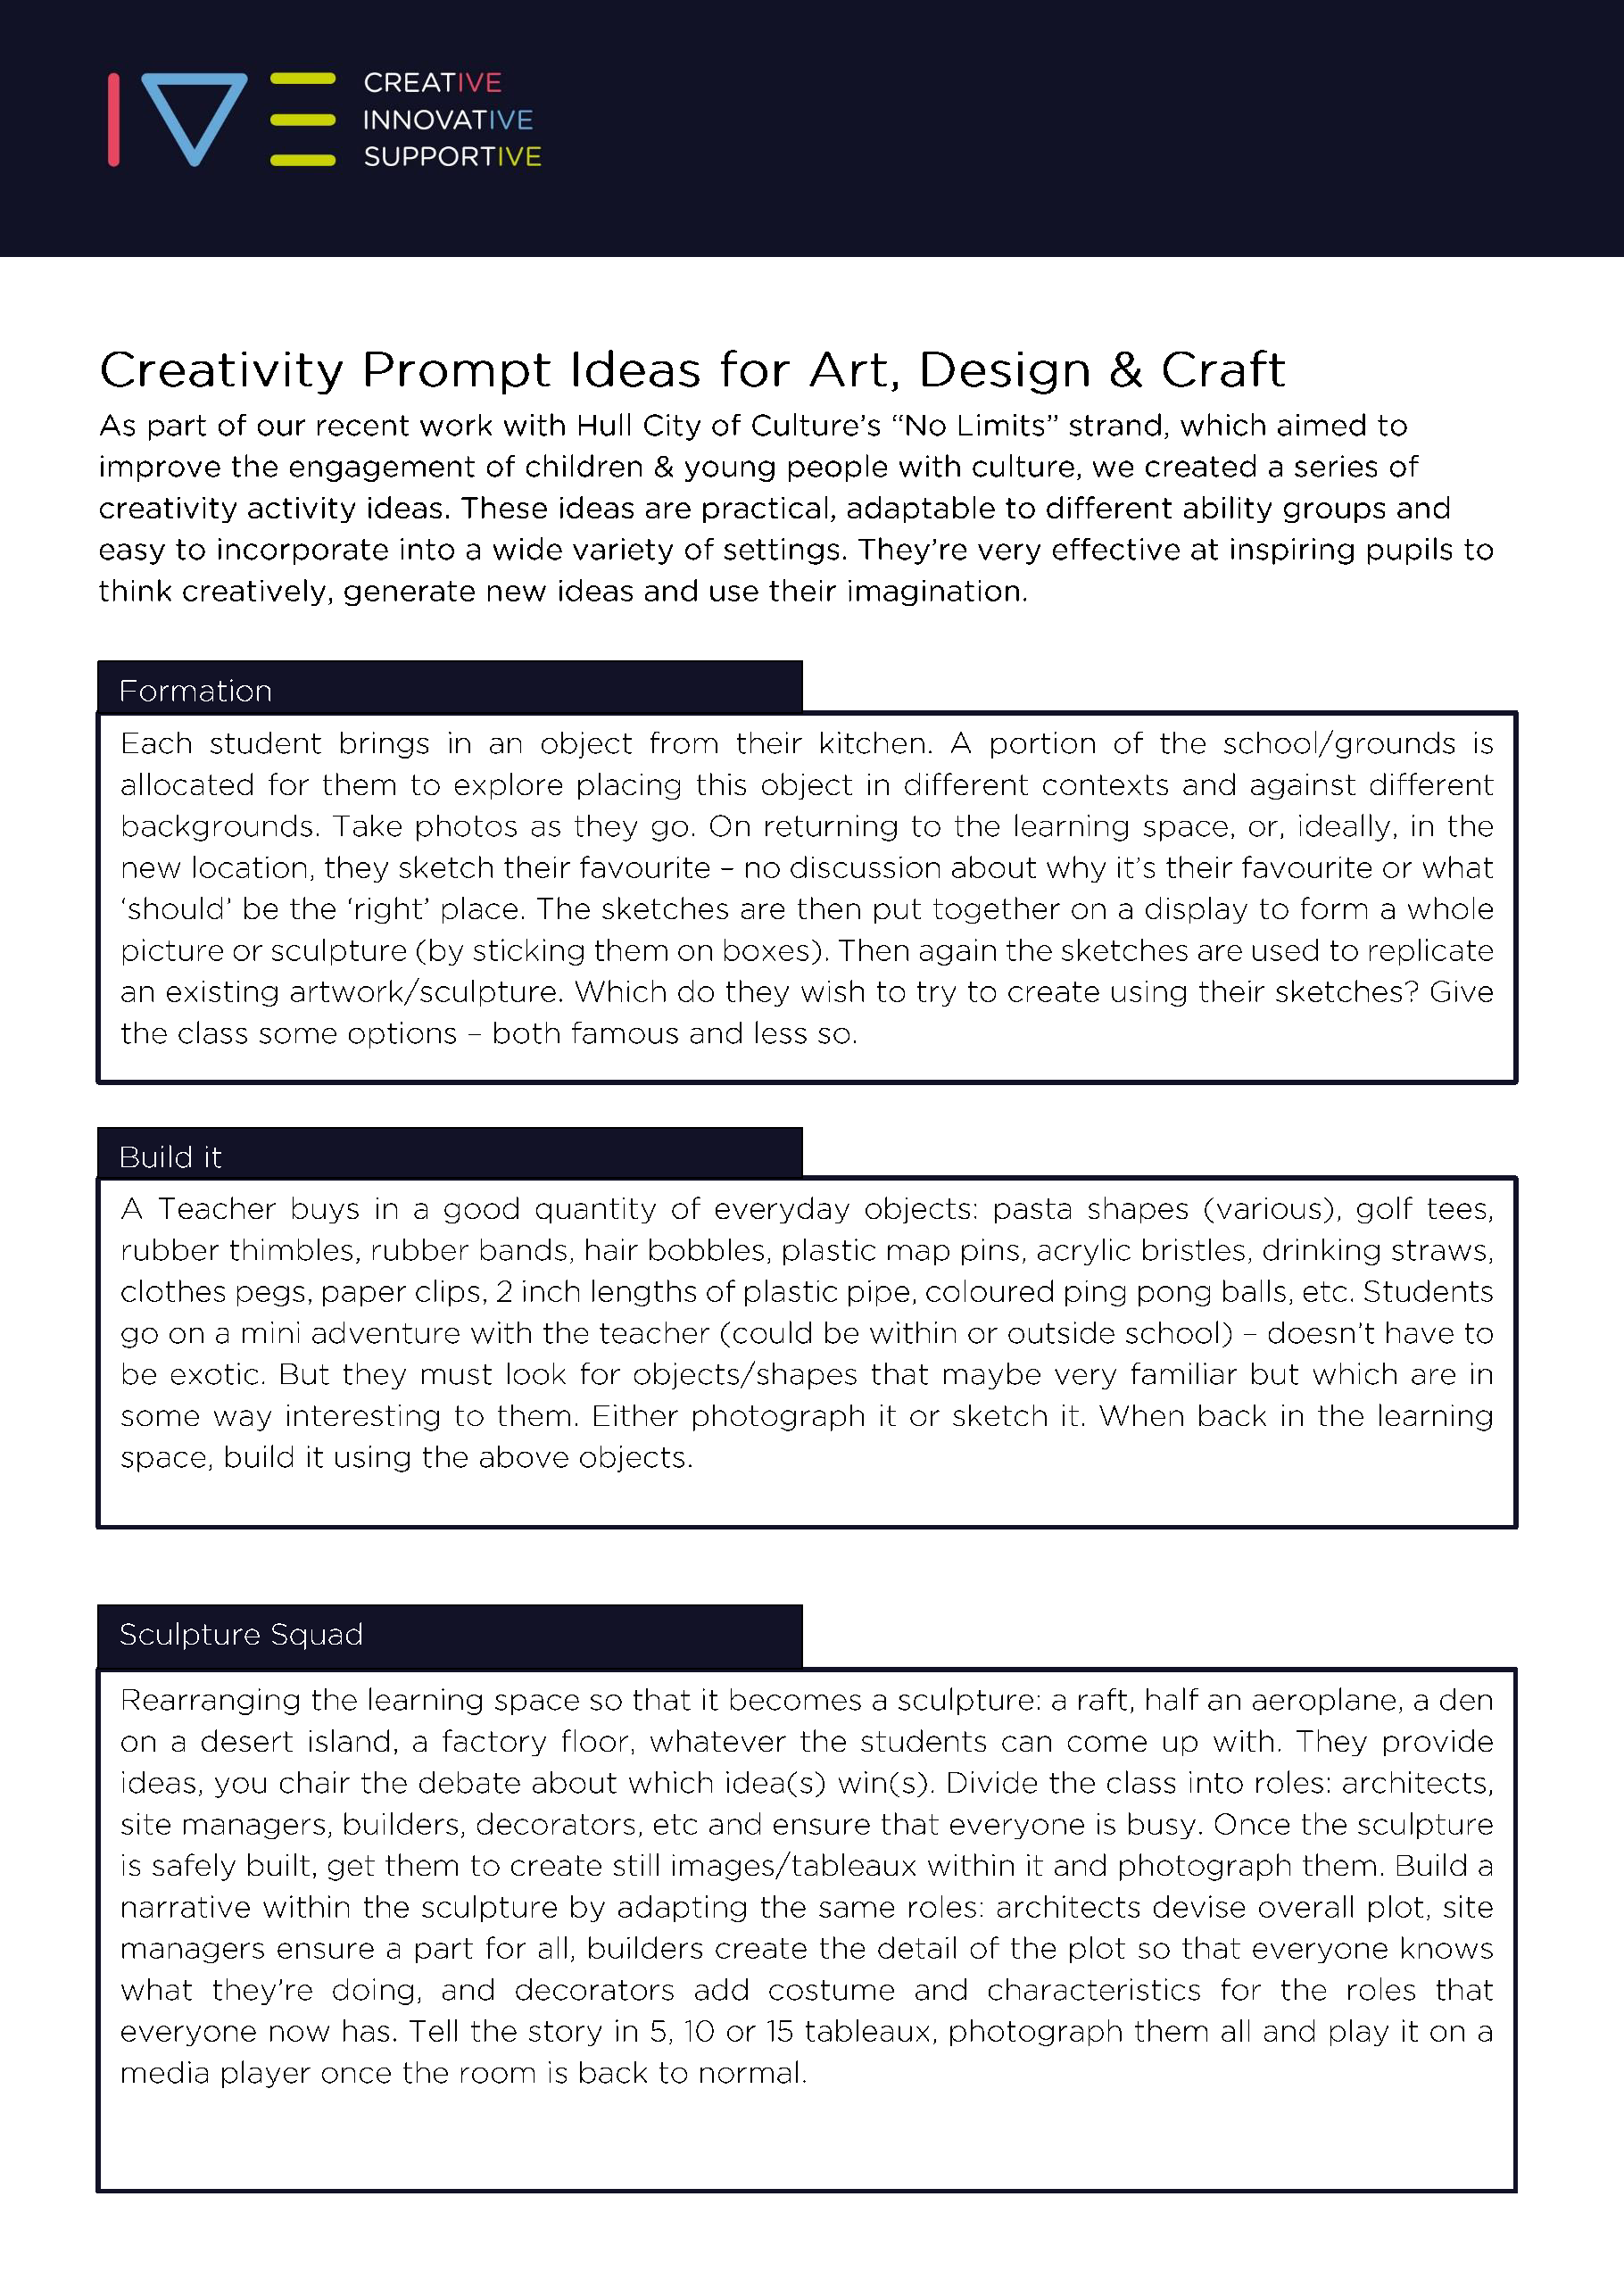 Creativity Prompt Ideas for Art Design Craft_Page_1